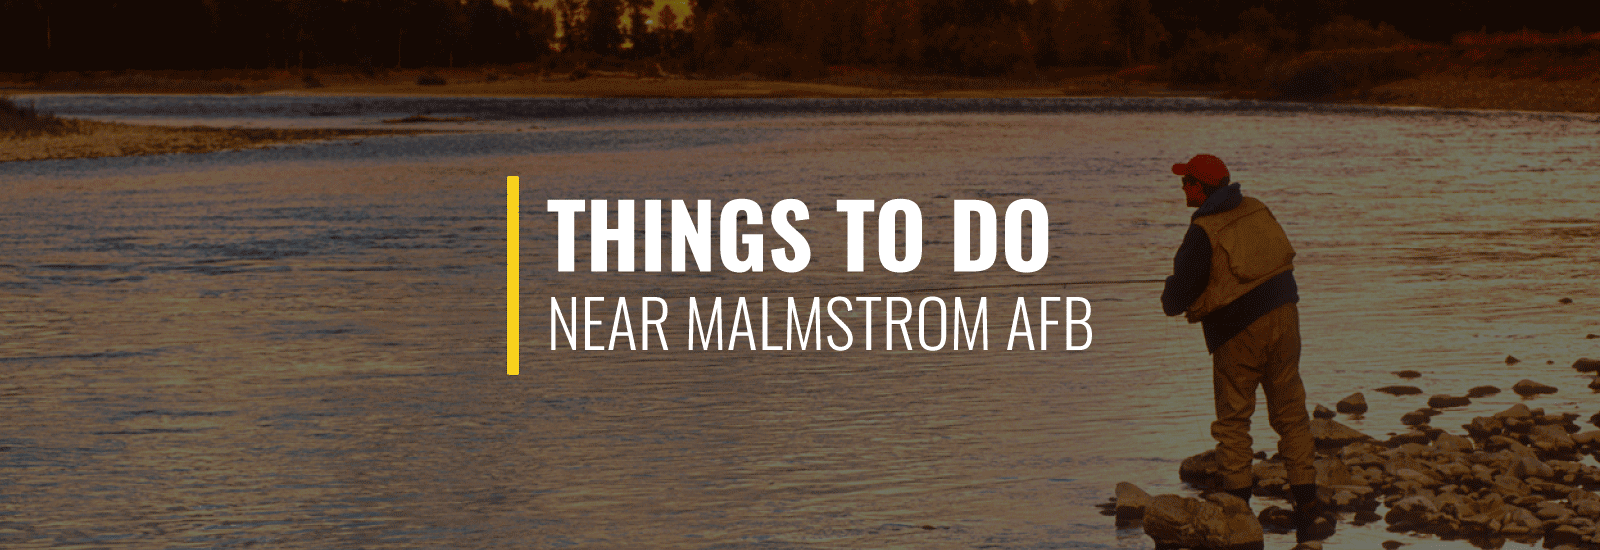 Malmstrom AFB Things to Do